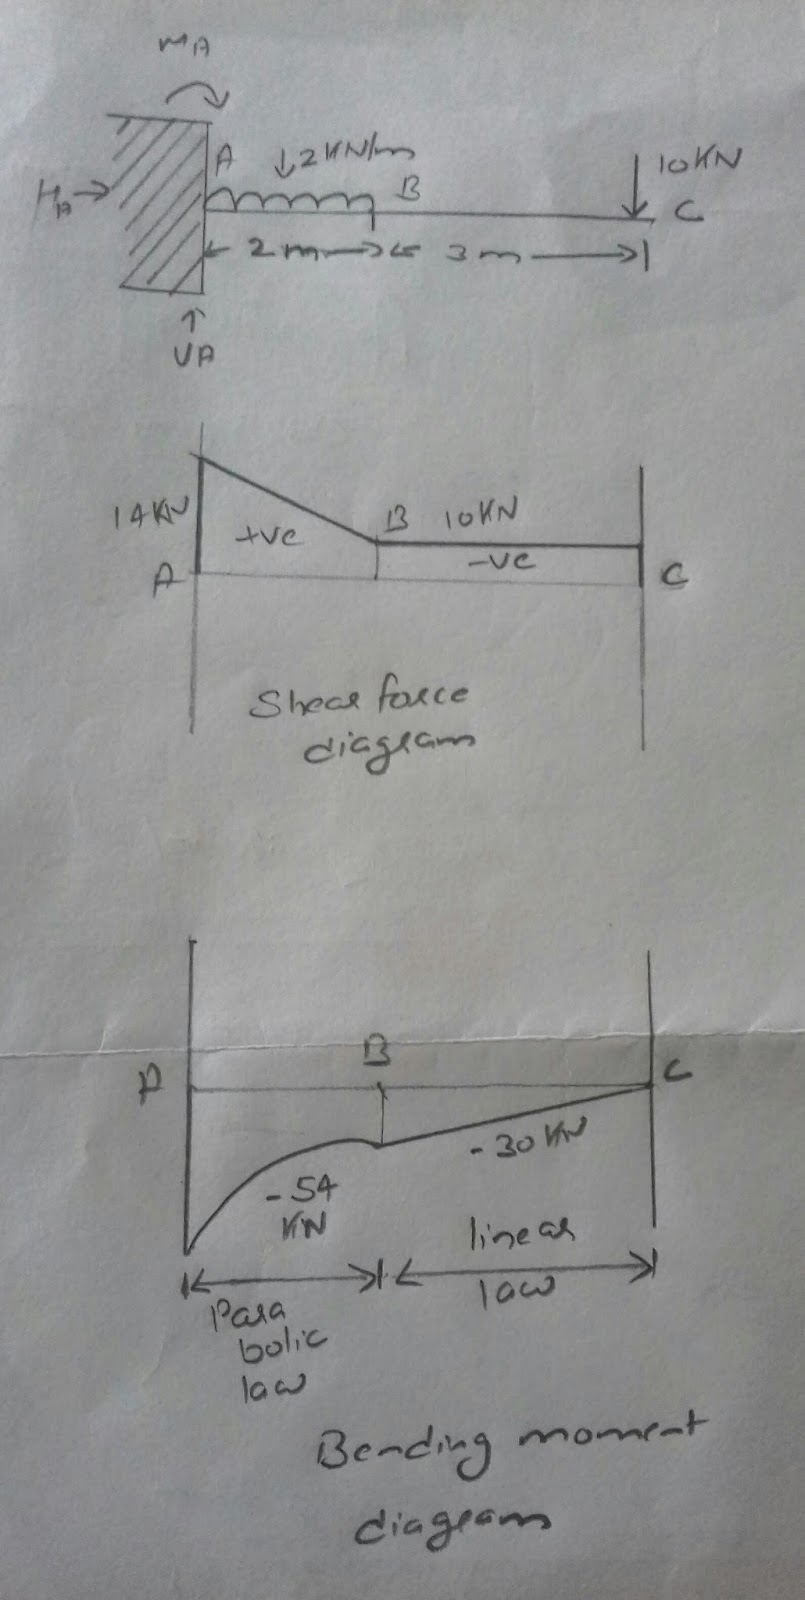 Shear Force And Bending Moment Diagram Draw Diagrams For The Overhanging Beam Now As Shown Below